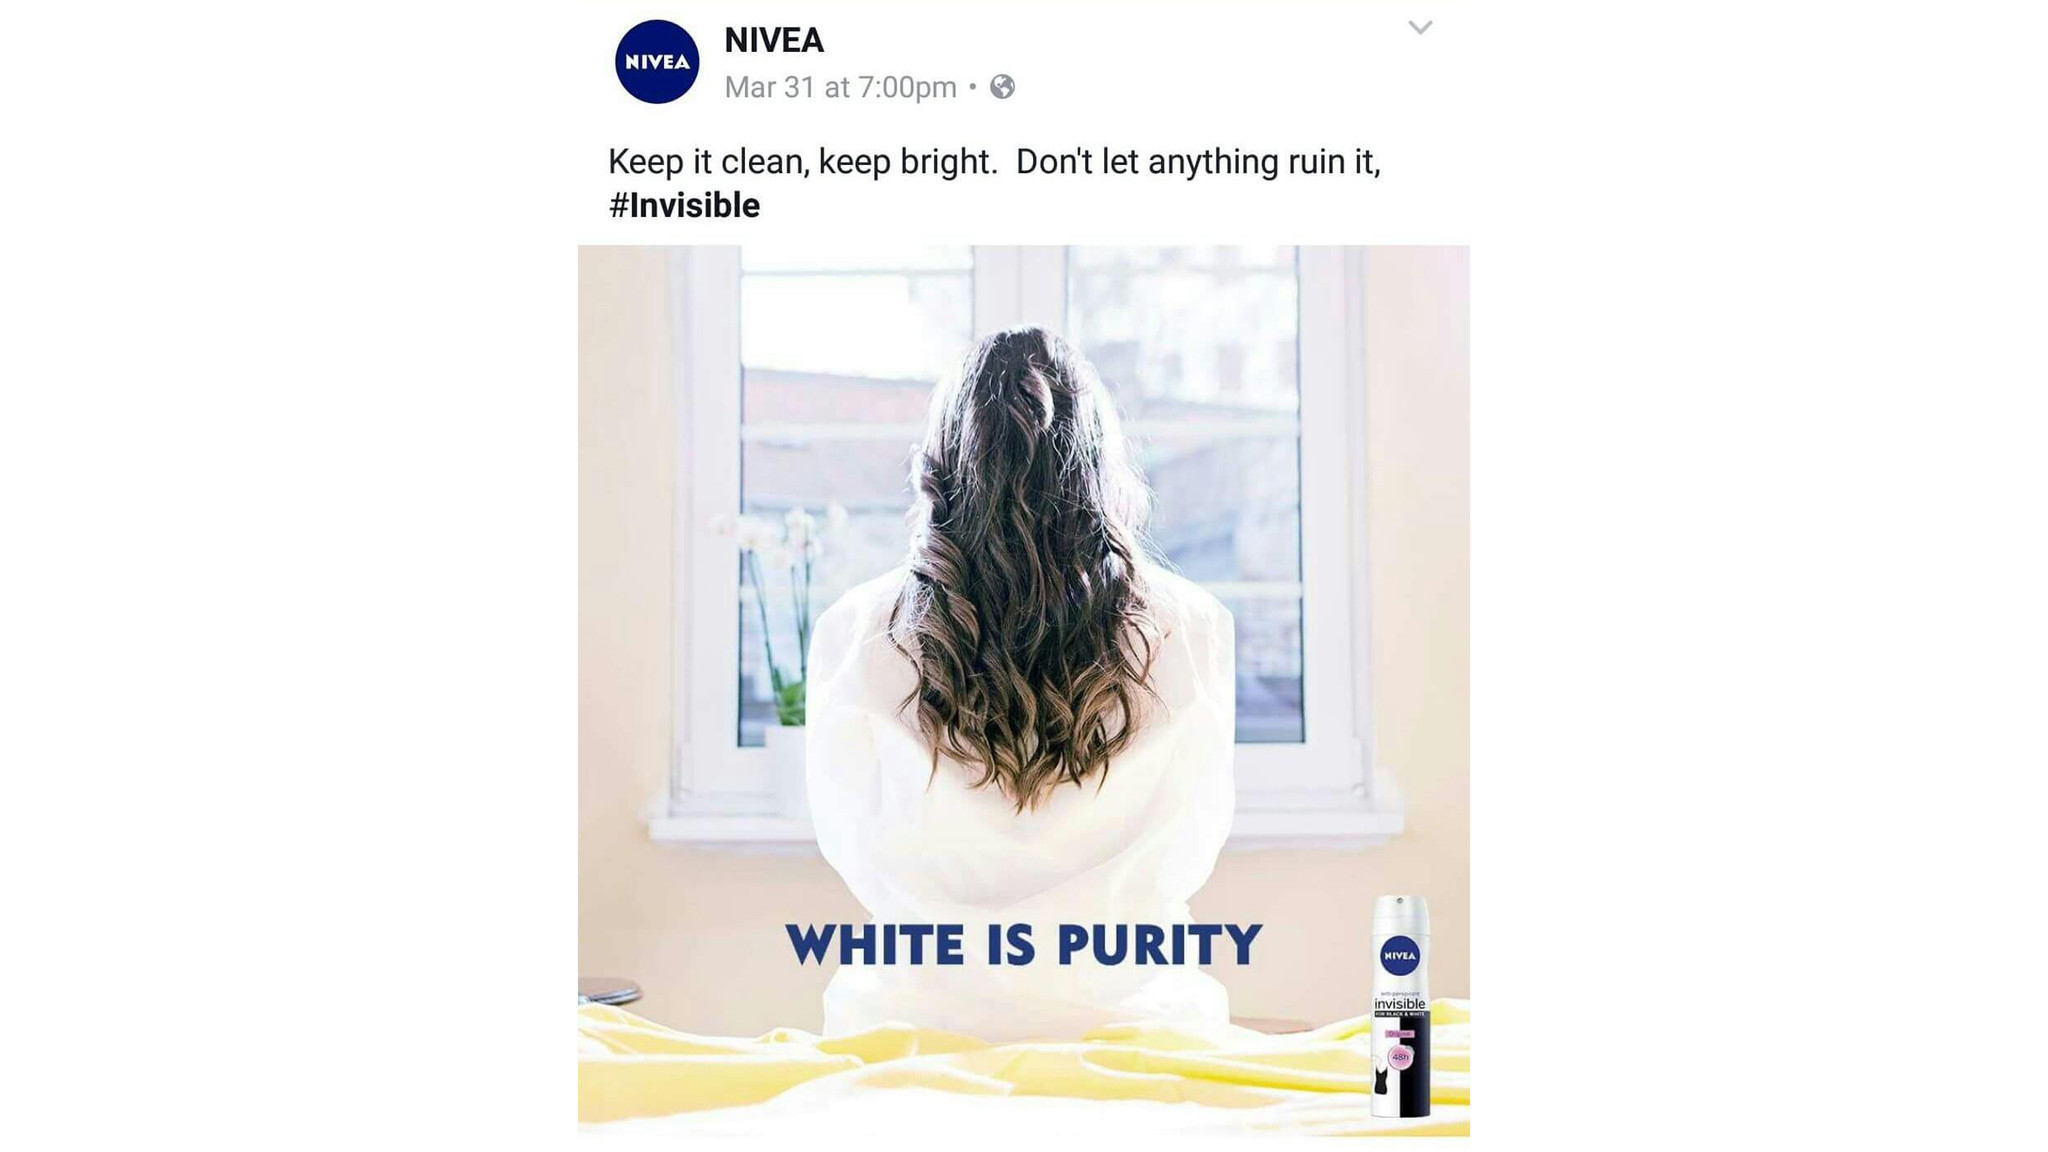 Nivea's 'White Is Purity' ad campaign did not go well